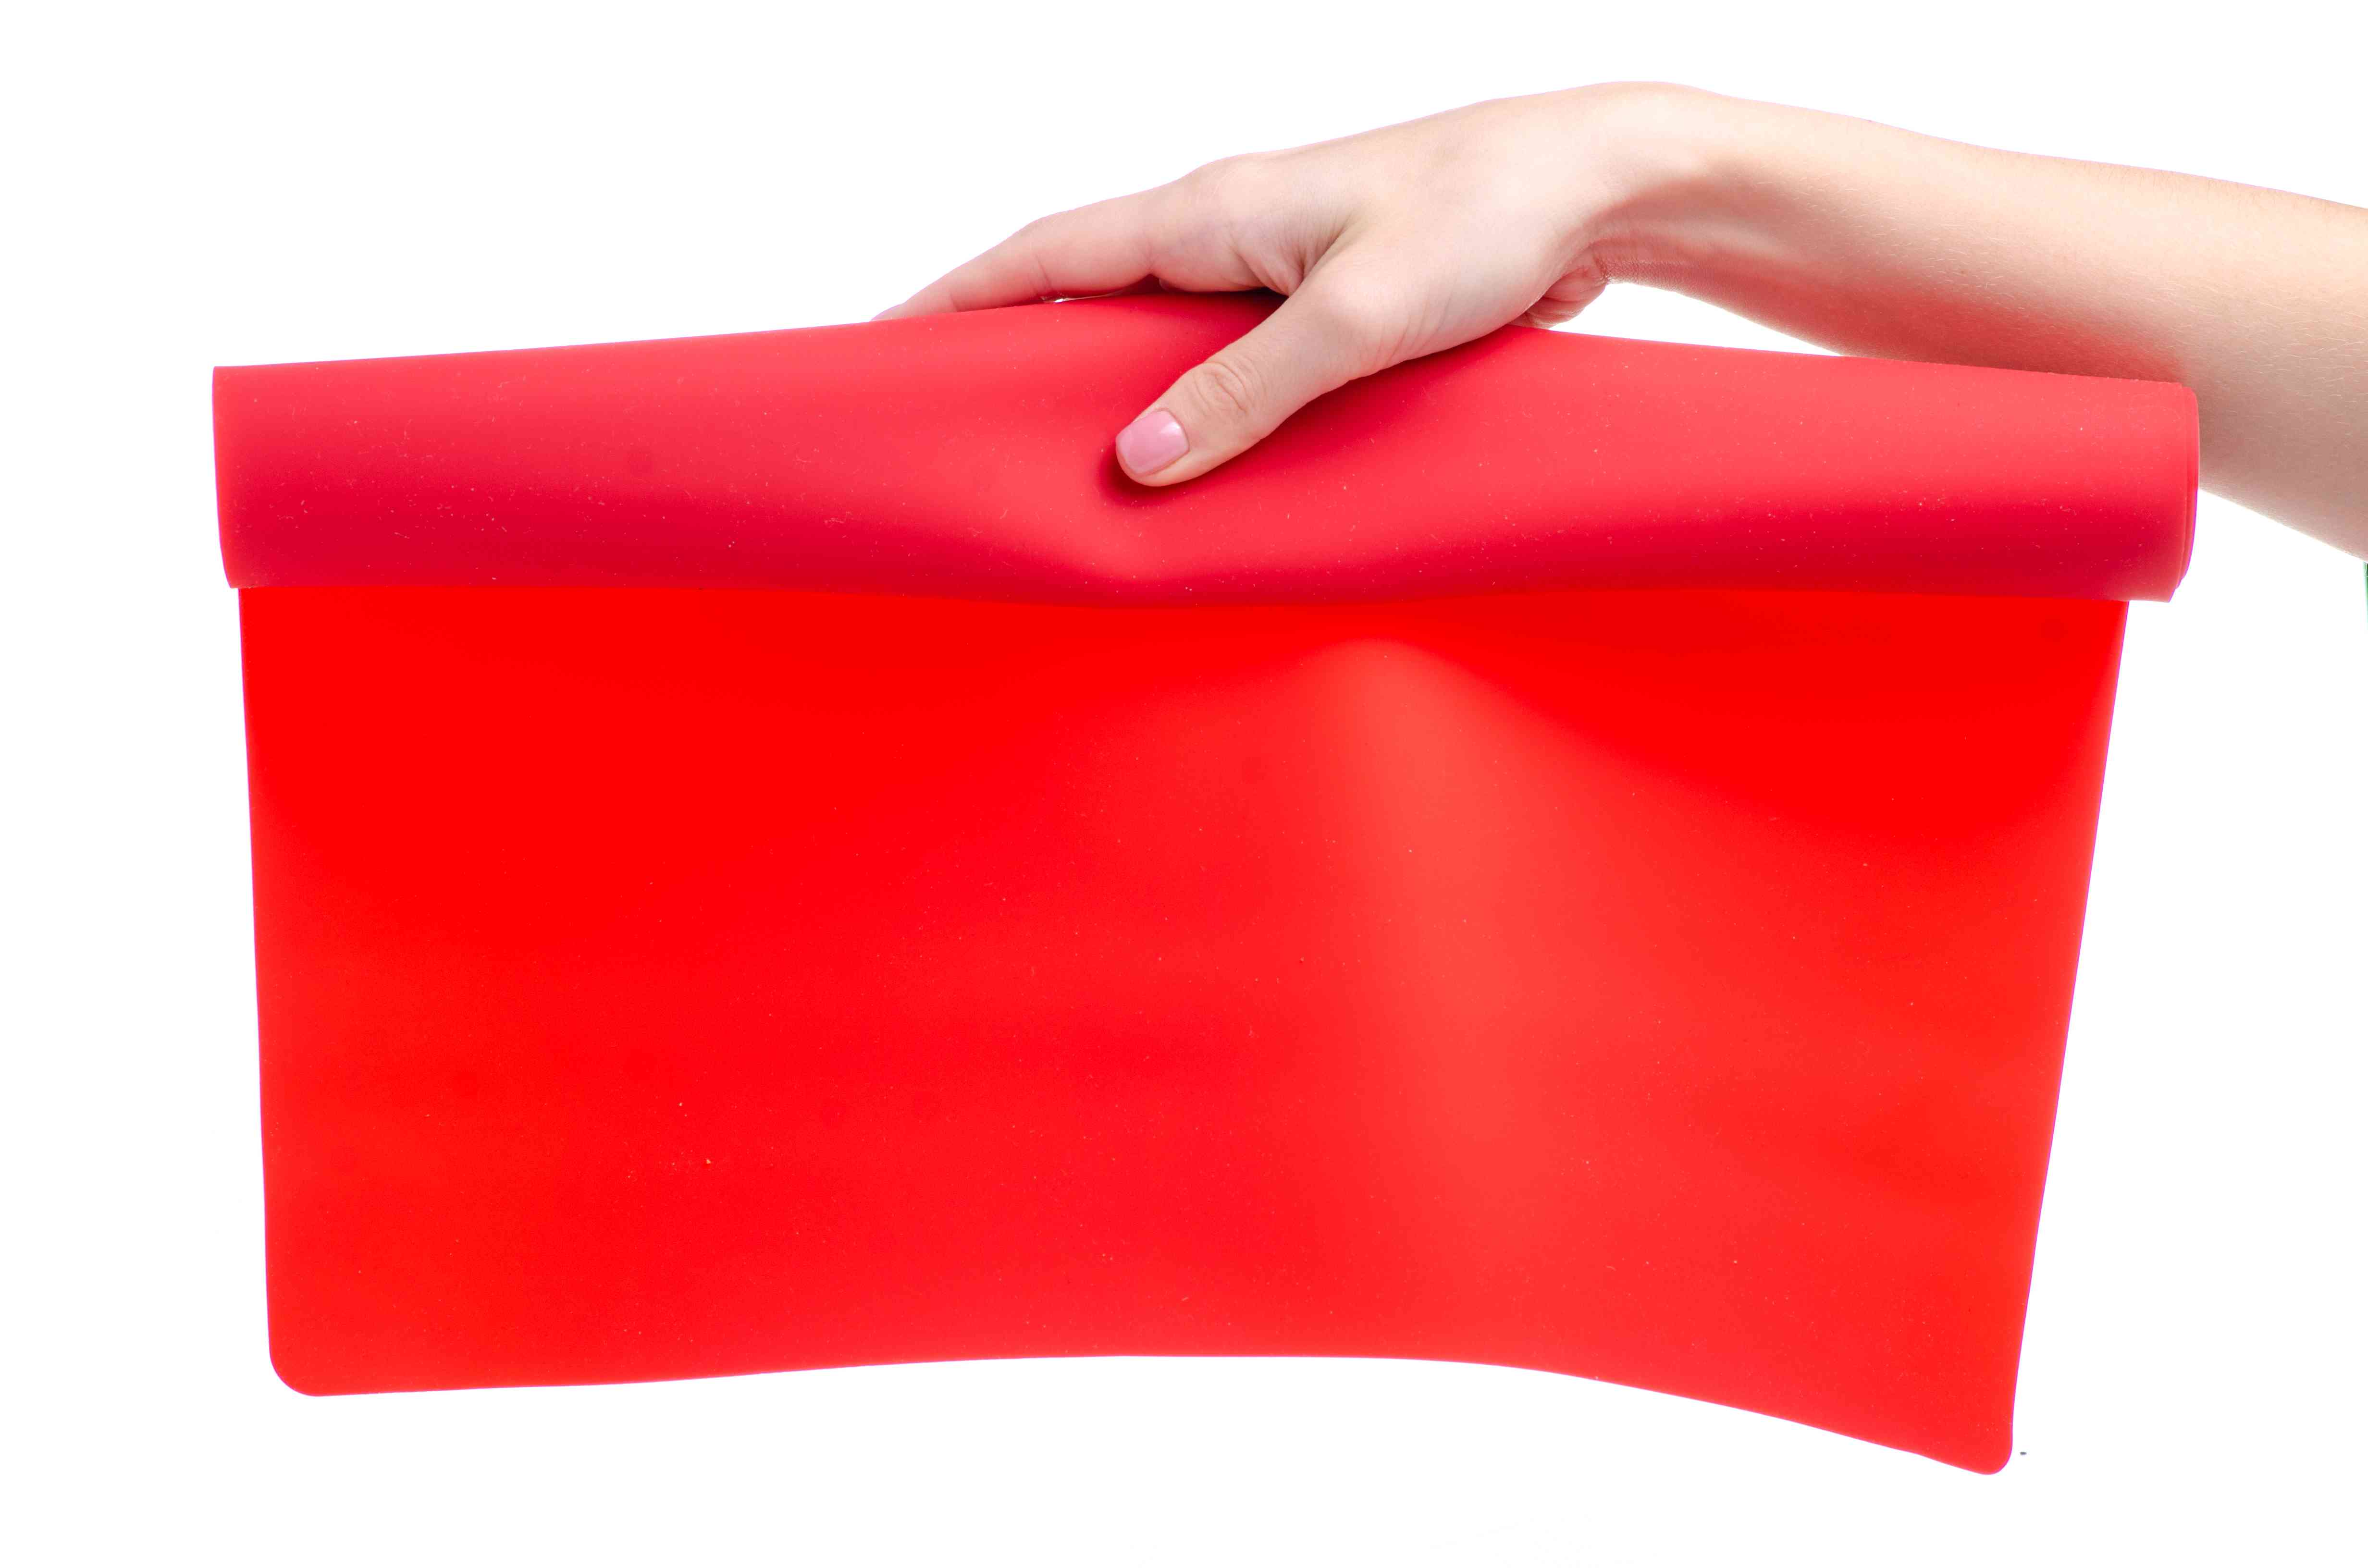 Silicone baking mat in hand